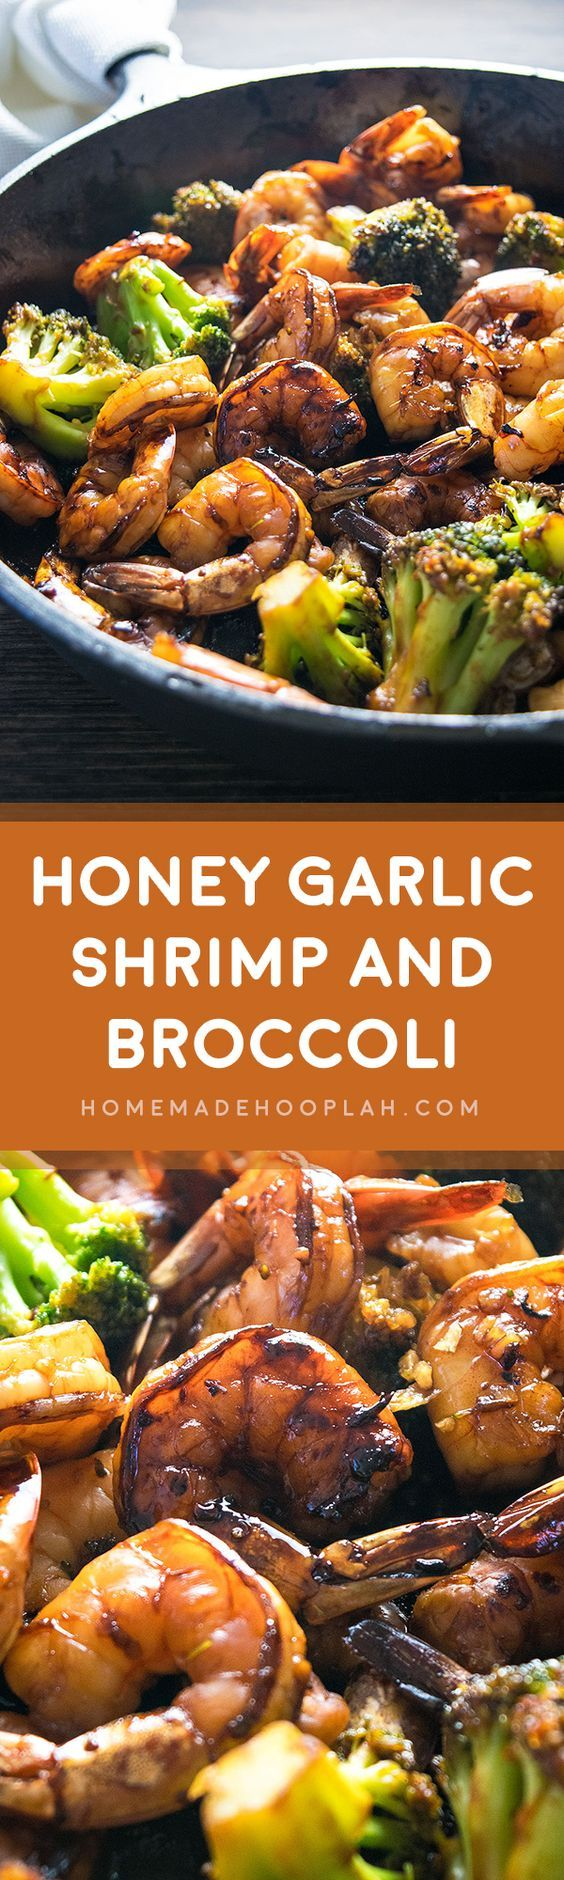 Honey garlic shrimp and broccoli food drink for Idee repas sympa